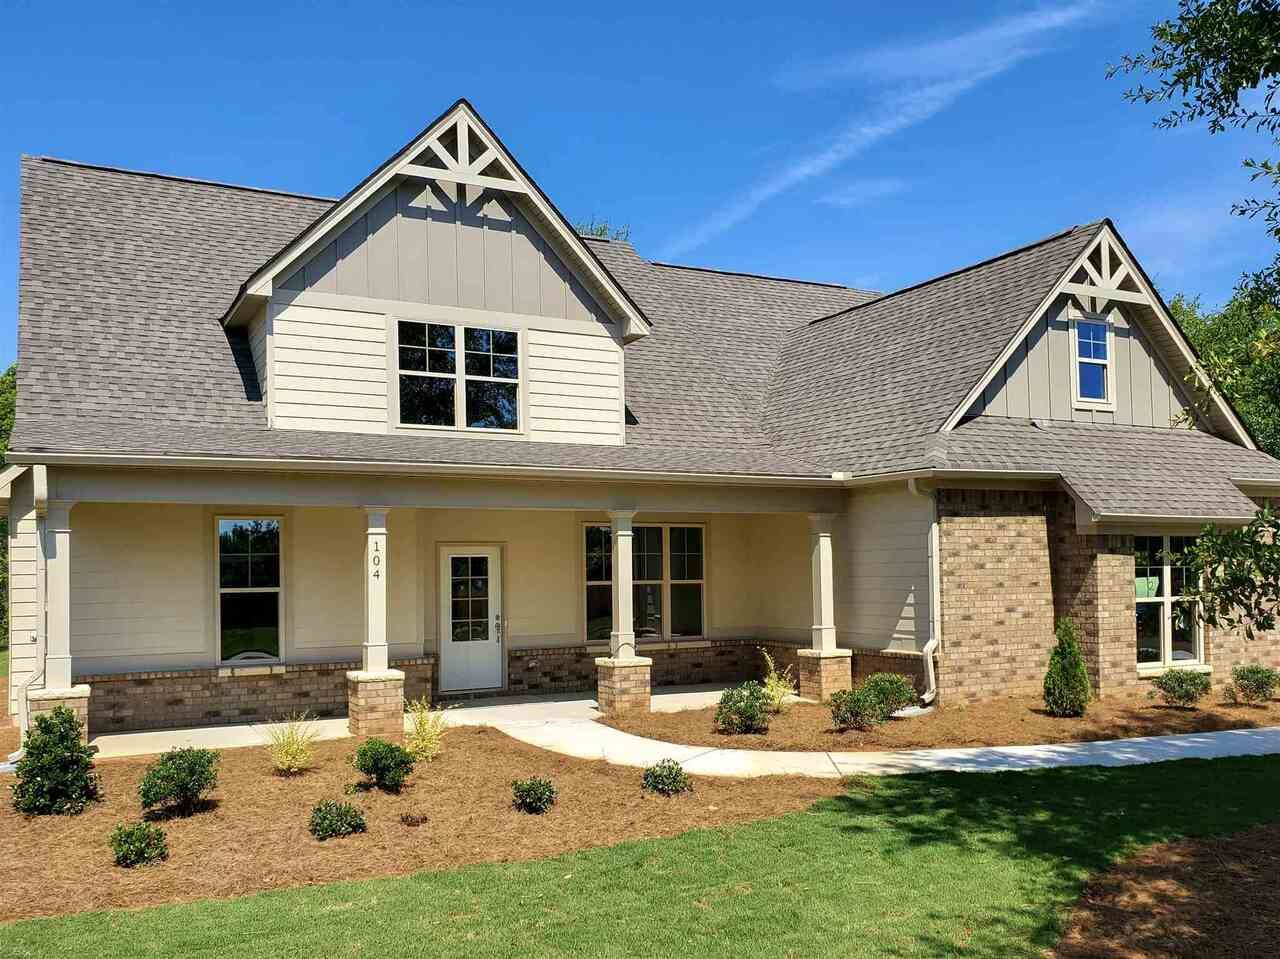 125 Retreat Ln, McDonough, GA 30252 - #: 8910273